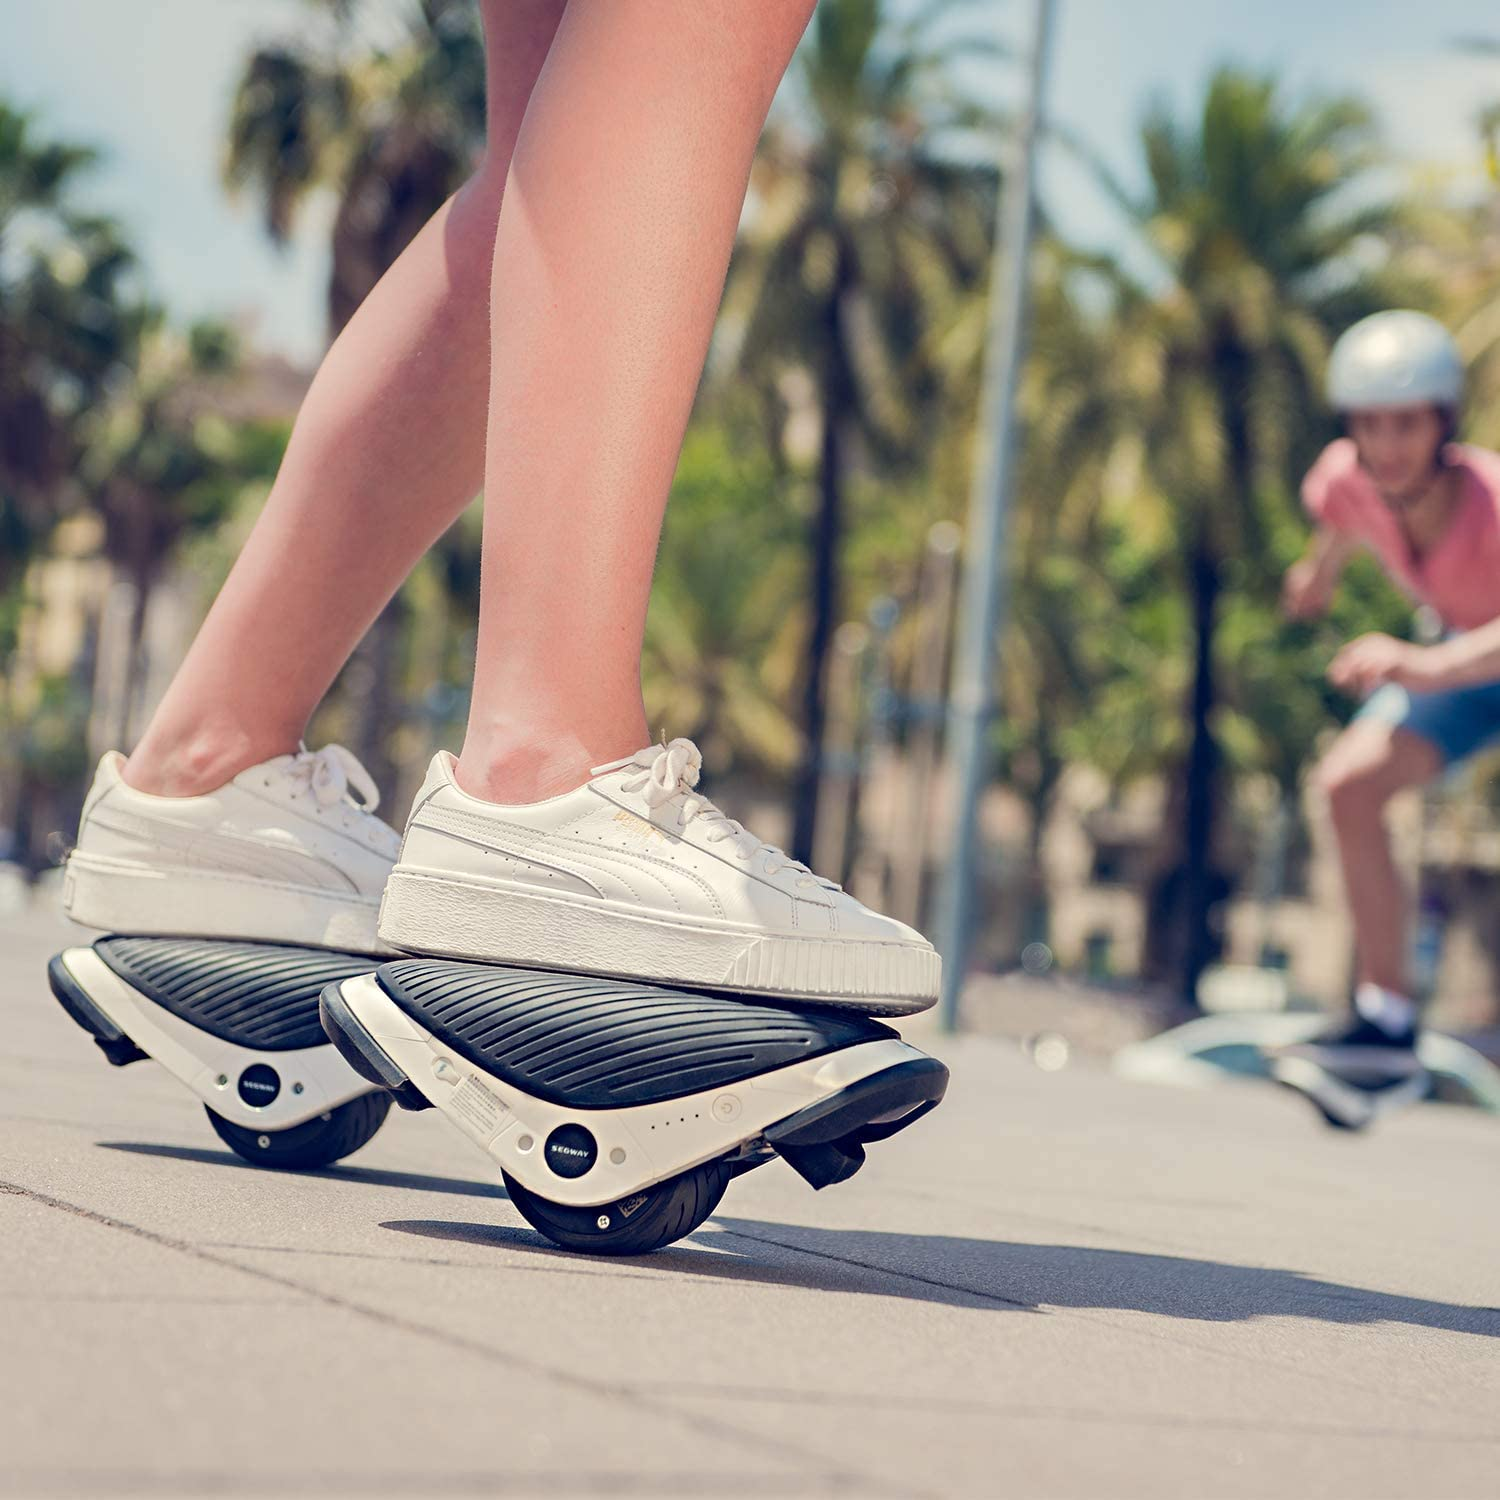 Electric Roller Skates Hovershoes, Two Wheels self Balancing Scooter with RGB LED, Rollerblades for Kids and Adults